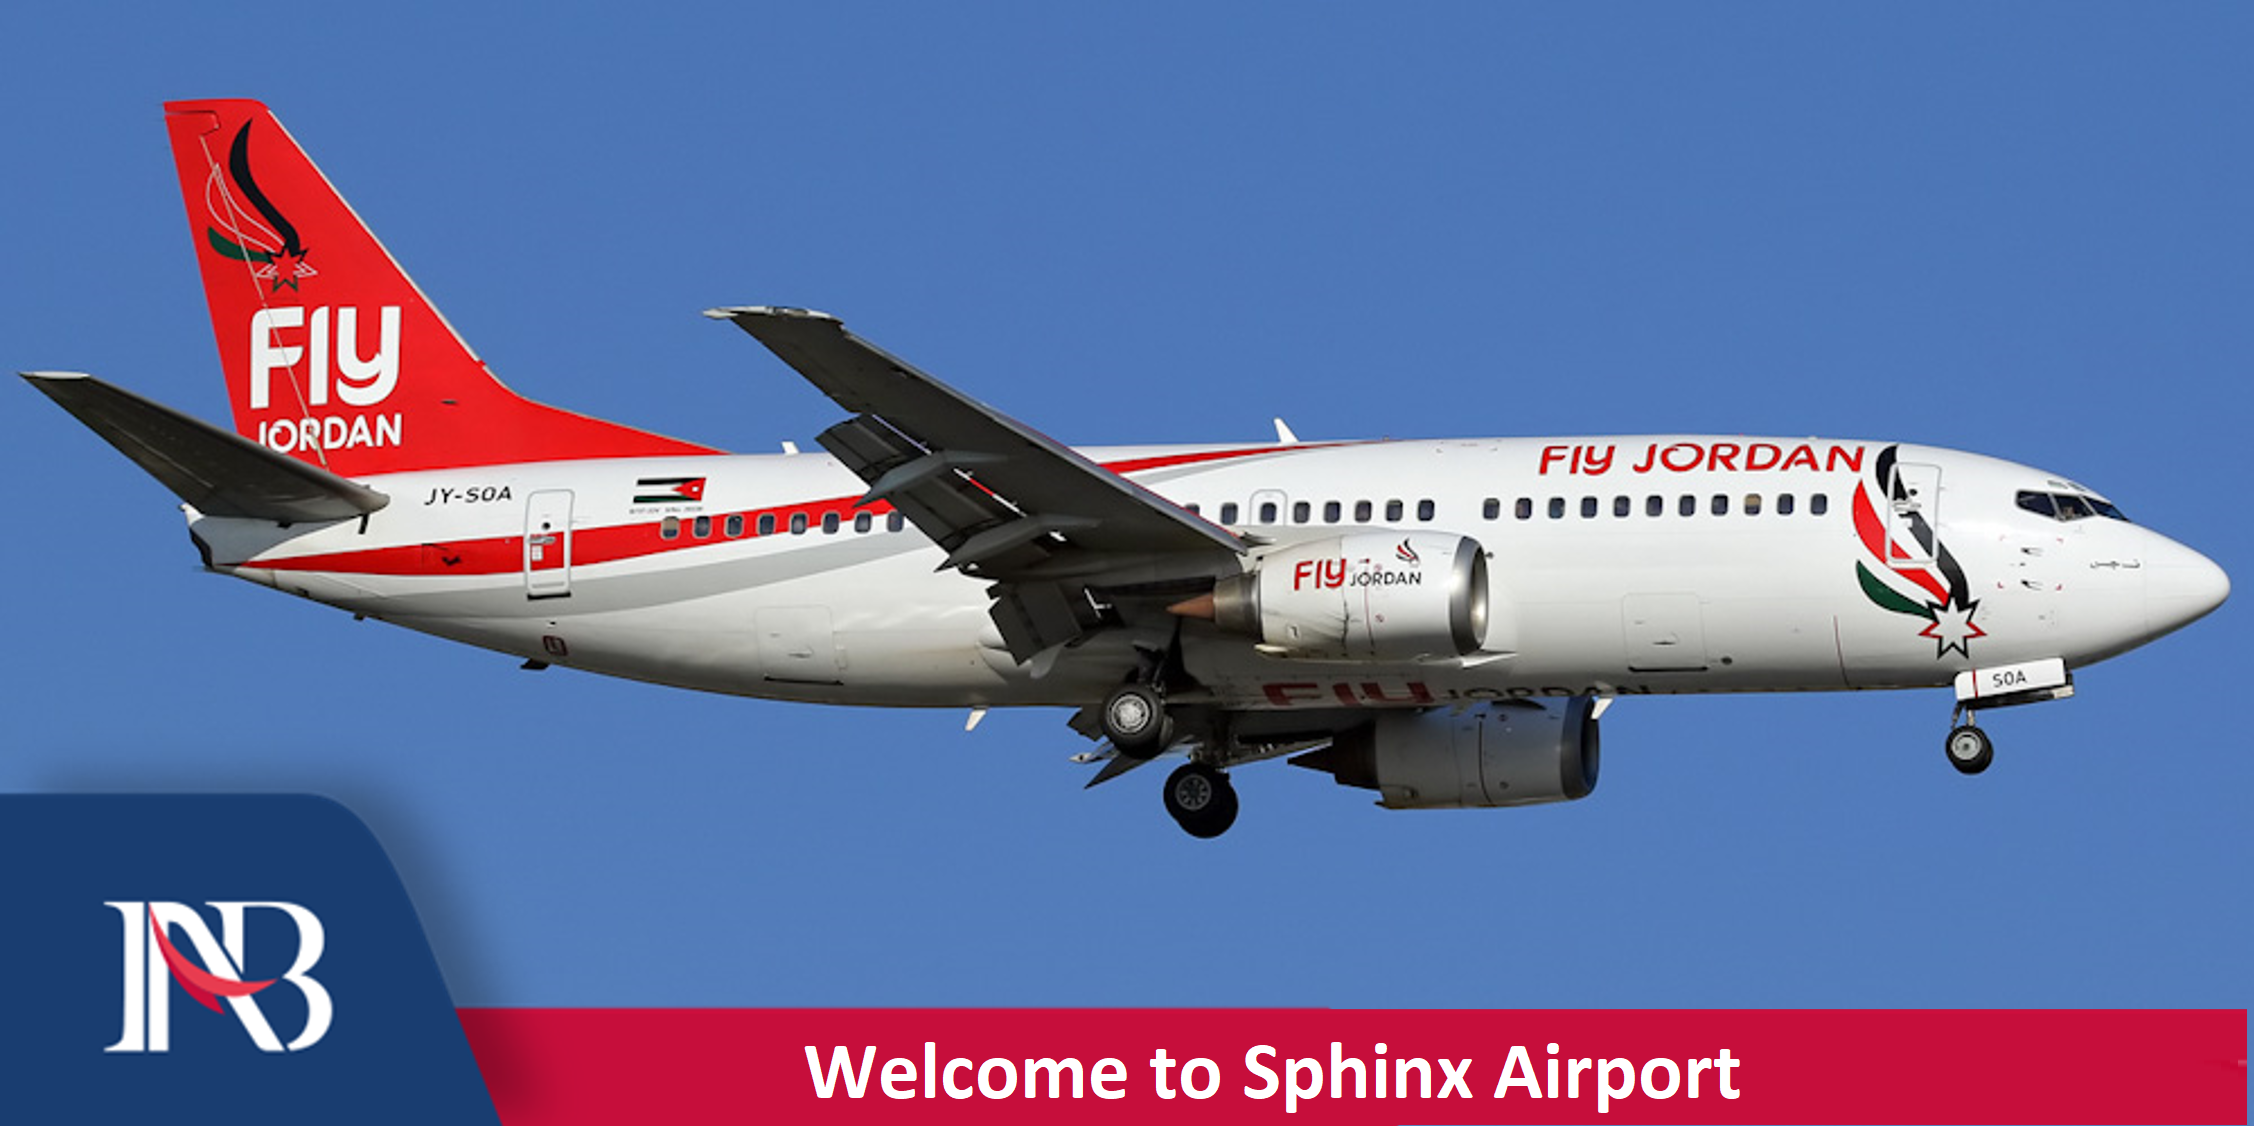 First Flight to Sphinx Airport